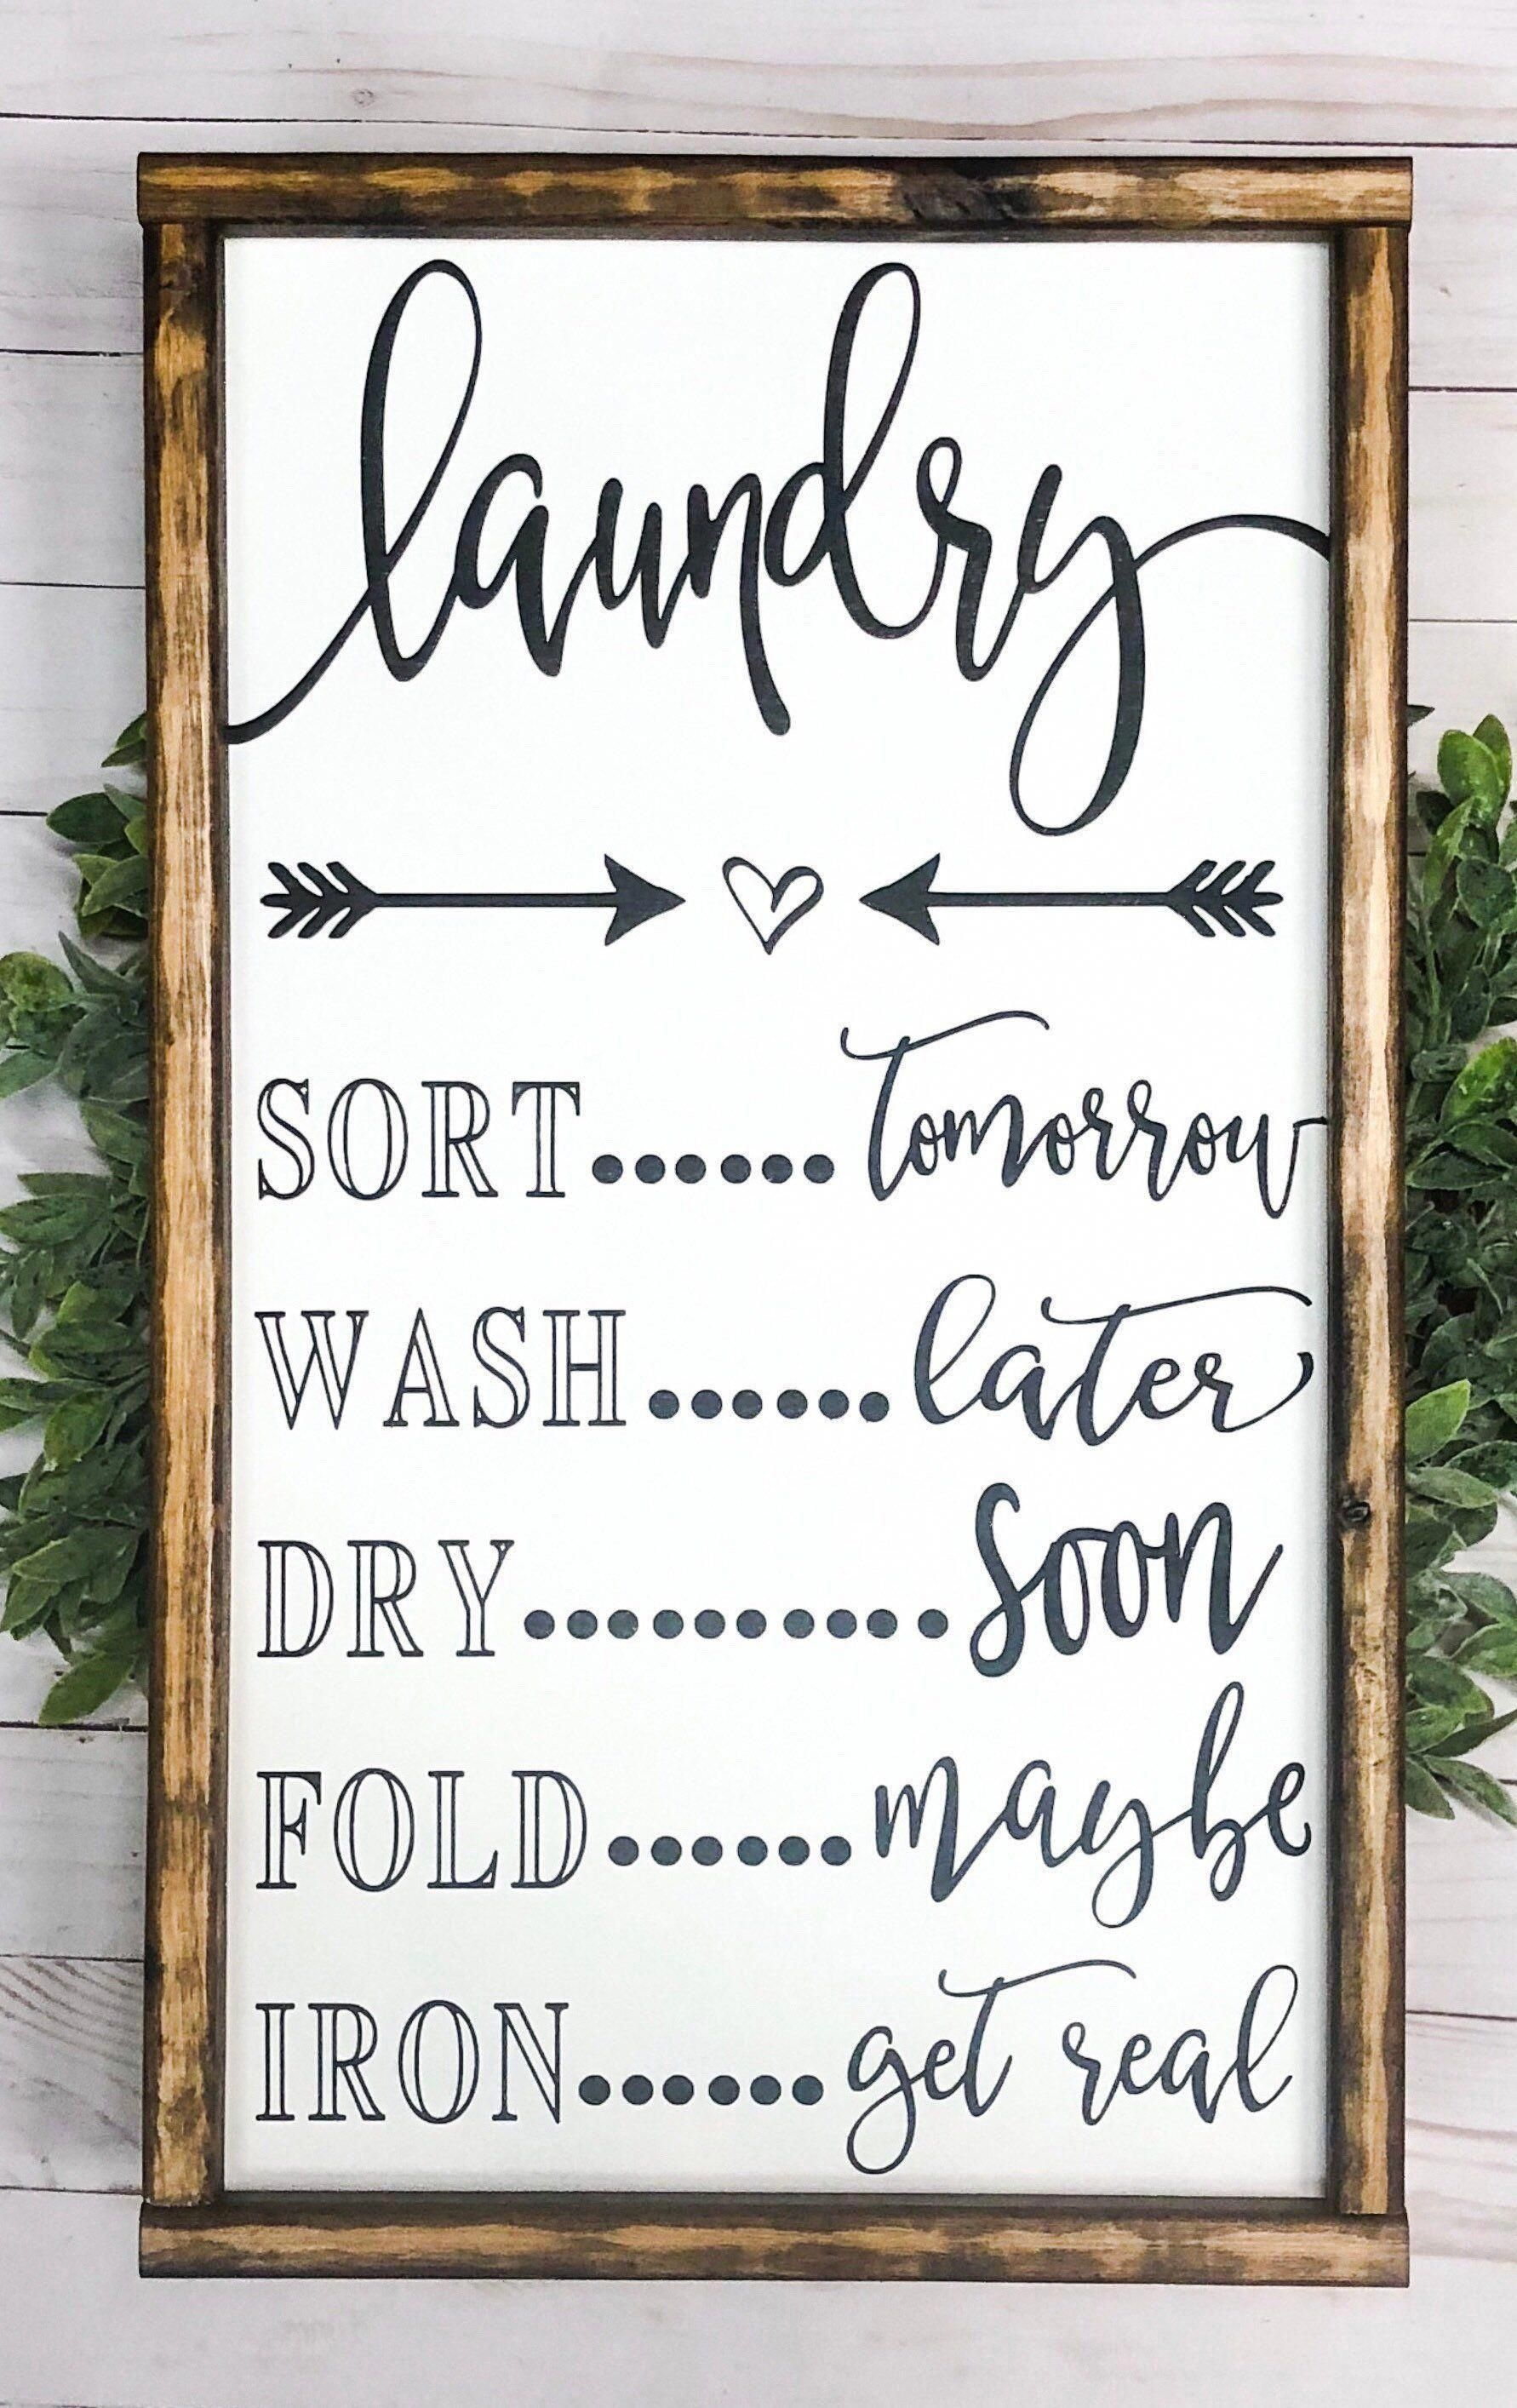 Signs With Quotes Farmhouse Decor Farmhouse Signs Etsy In 2020 Funny Kitchen Signs Country Farmhouse Decor Laundry Room Decor